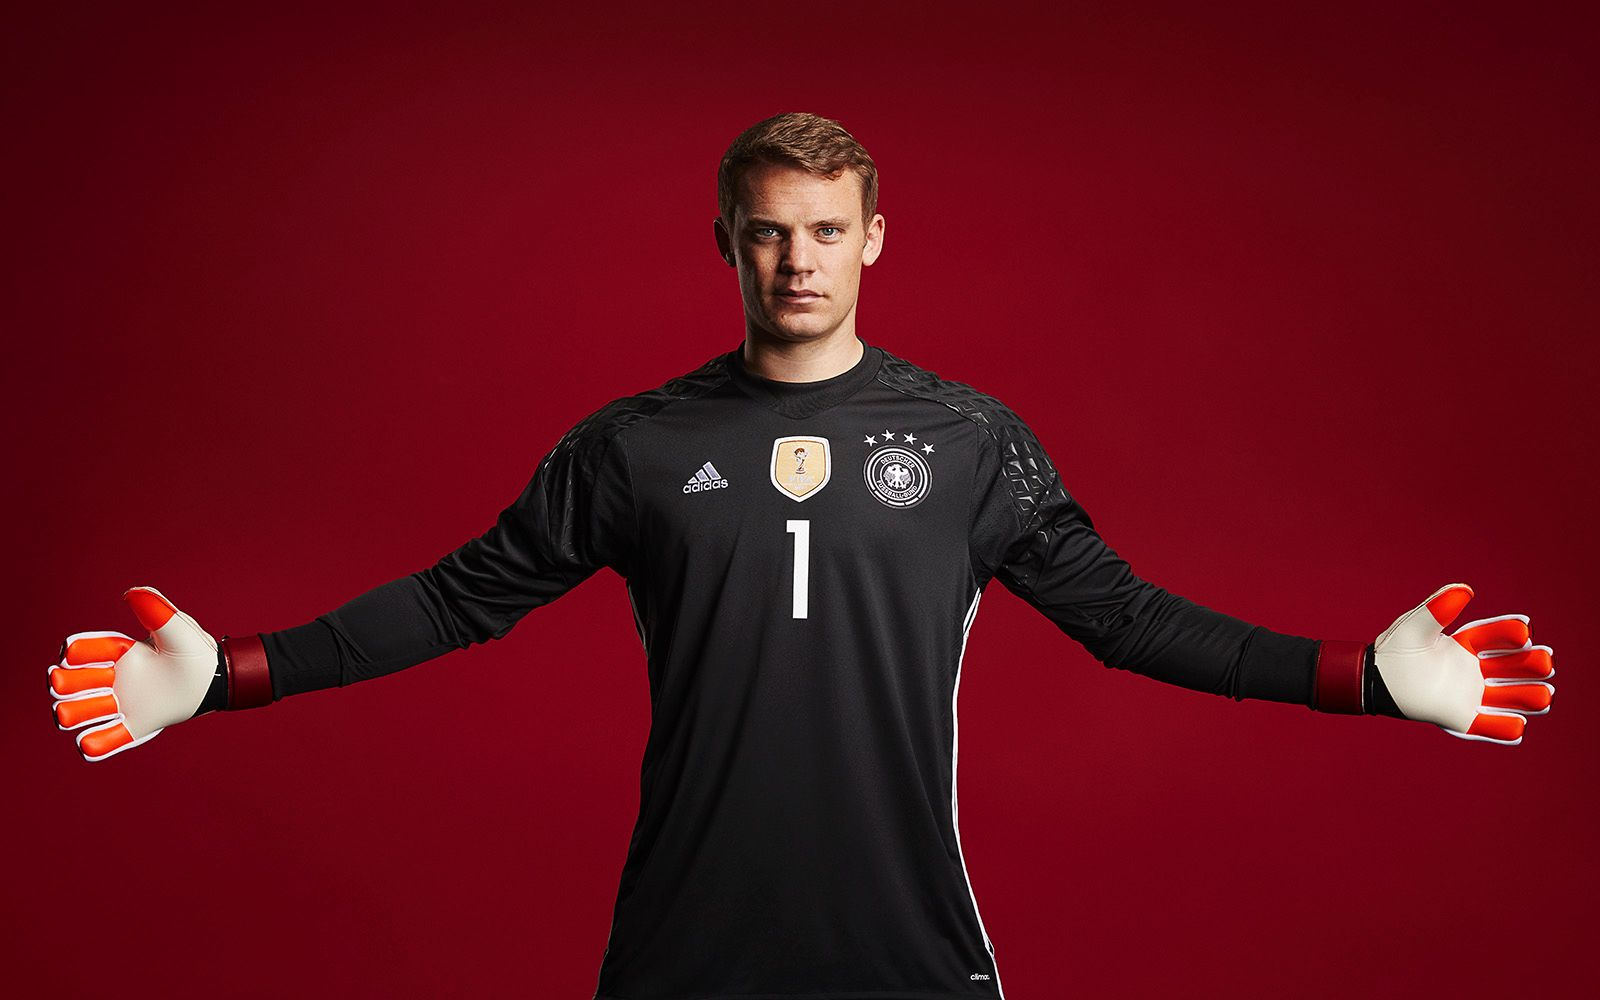 Bayern Munichs Manuel Neuer Is Changing What It Means To Be A Goalie Obey Short Circuit Tshirt The Stunning Strange Beautiful Game Of